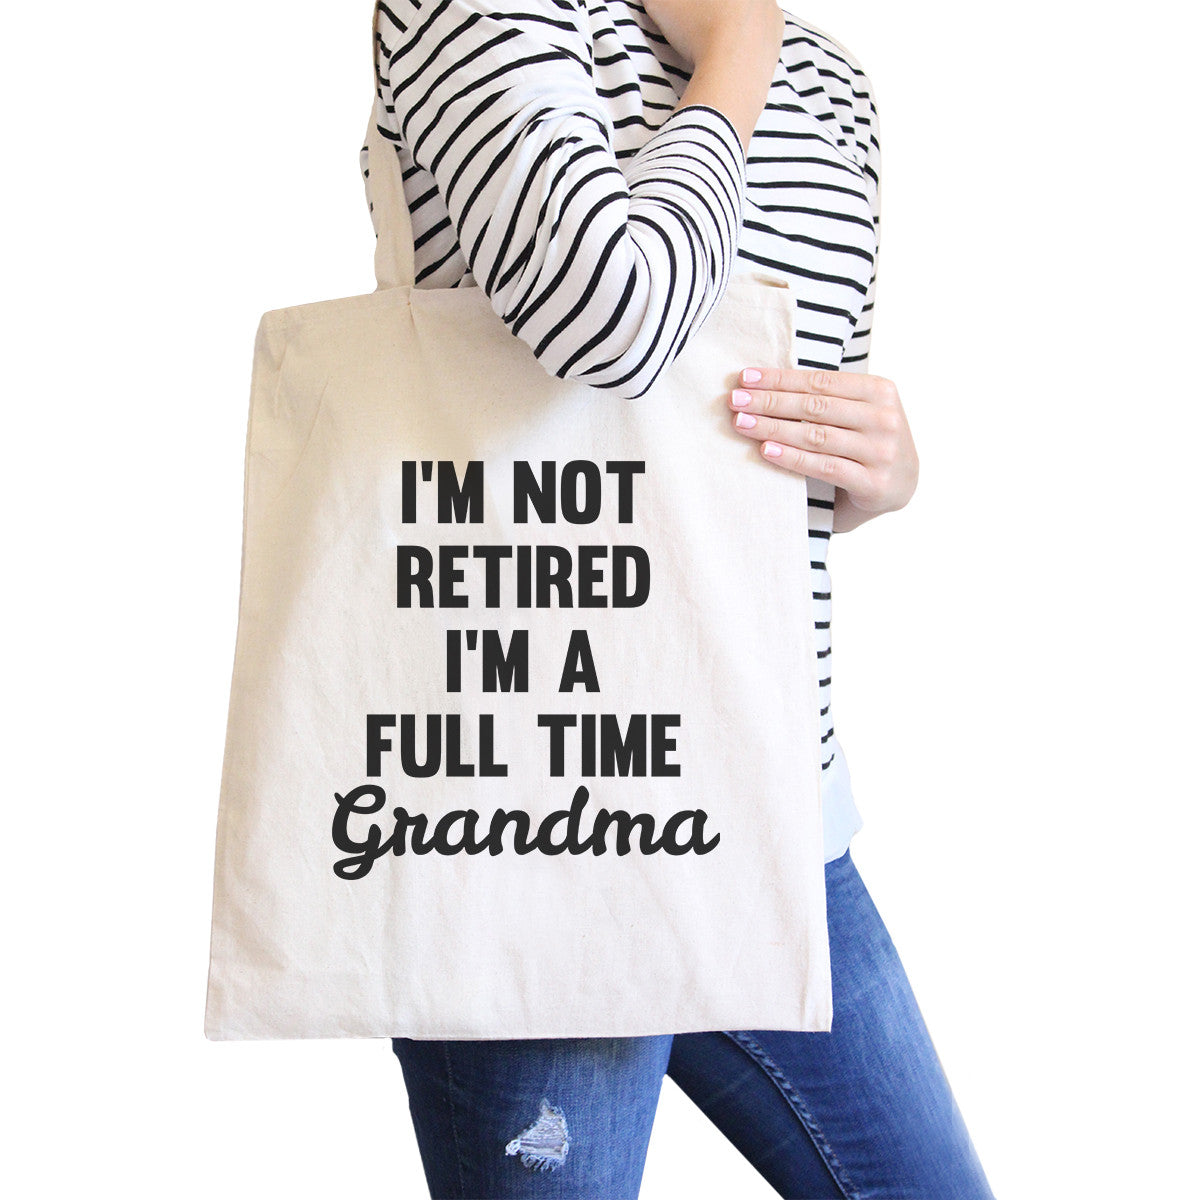 Not Retired Full Time Canvas Tote Bag Grandma Gifts For Mothers Day ... 5d1a6608405